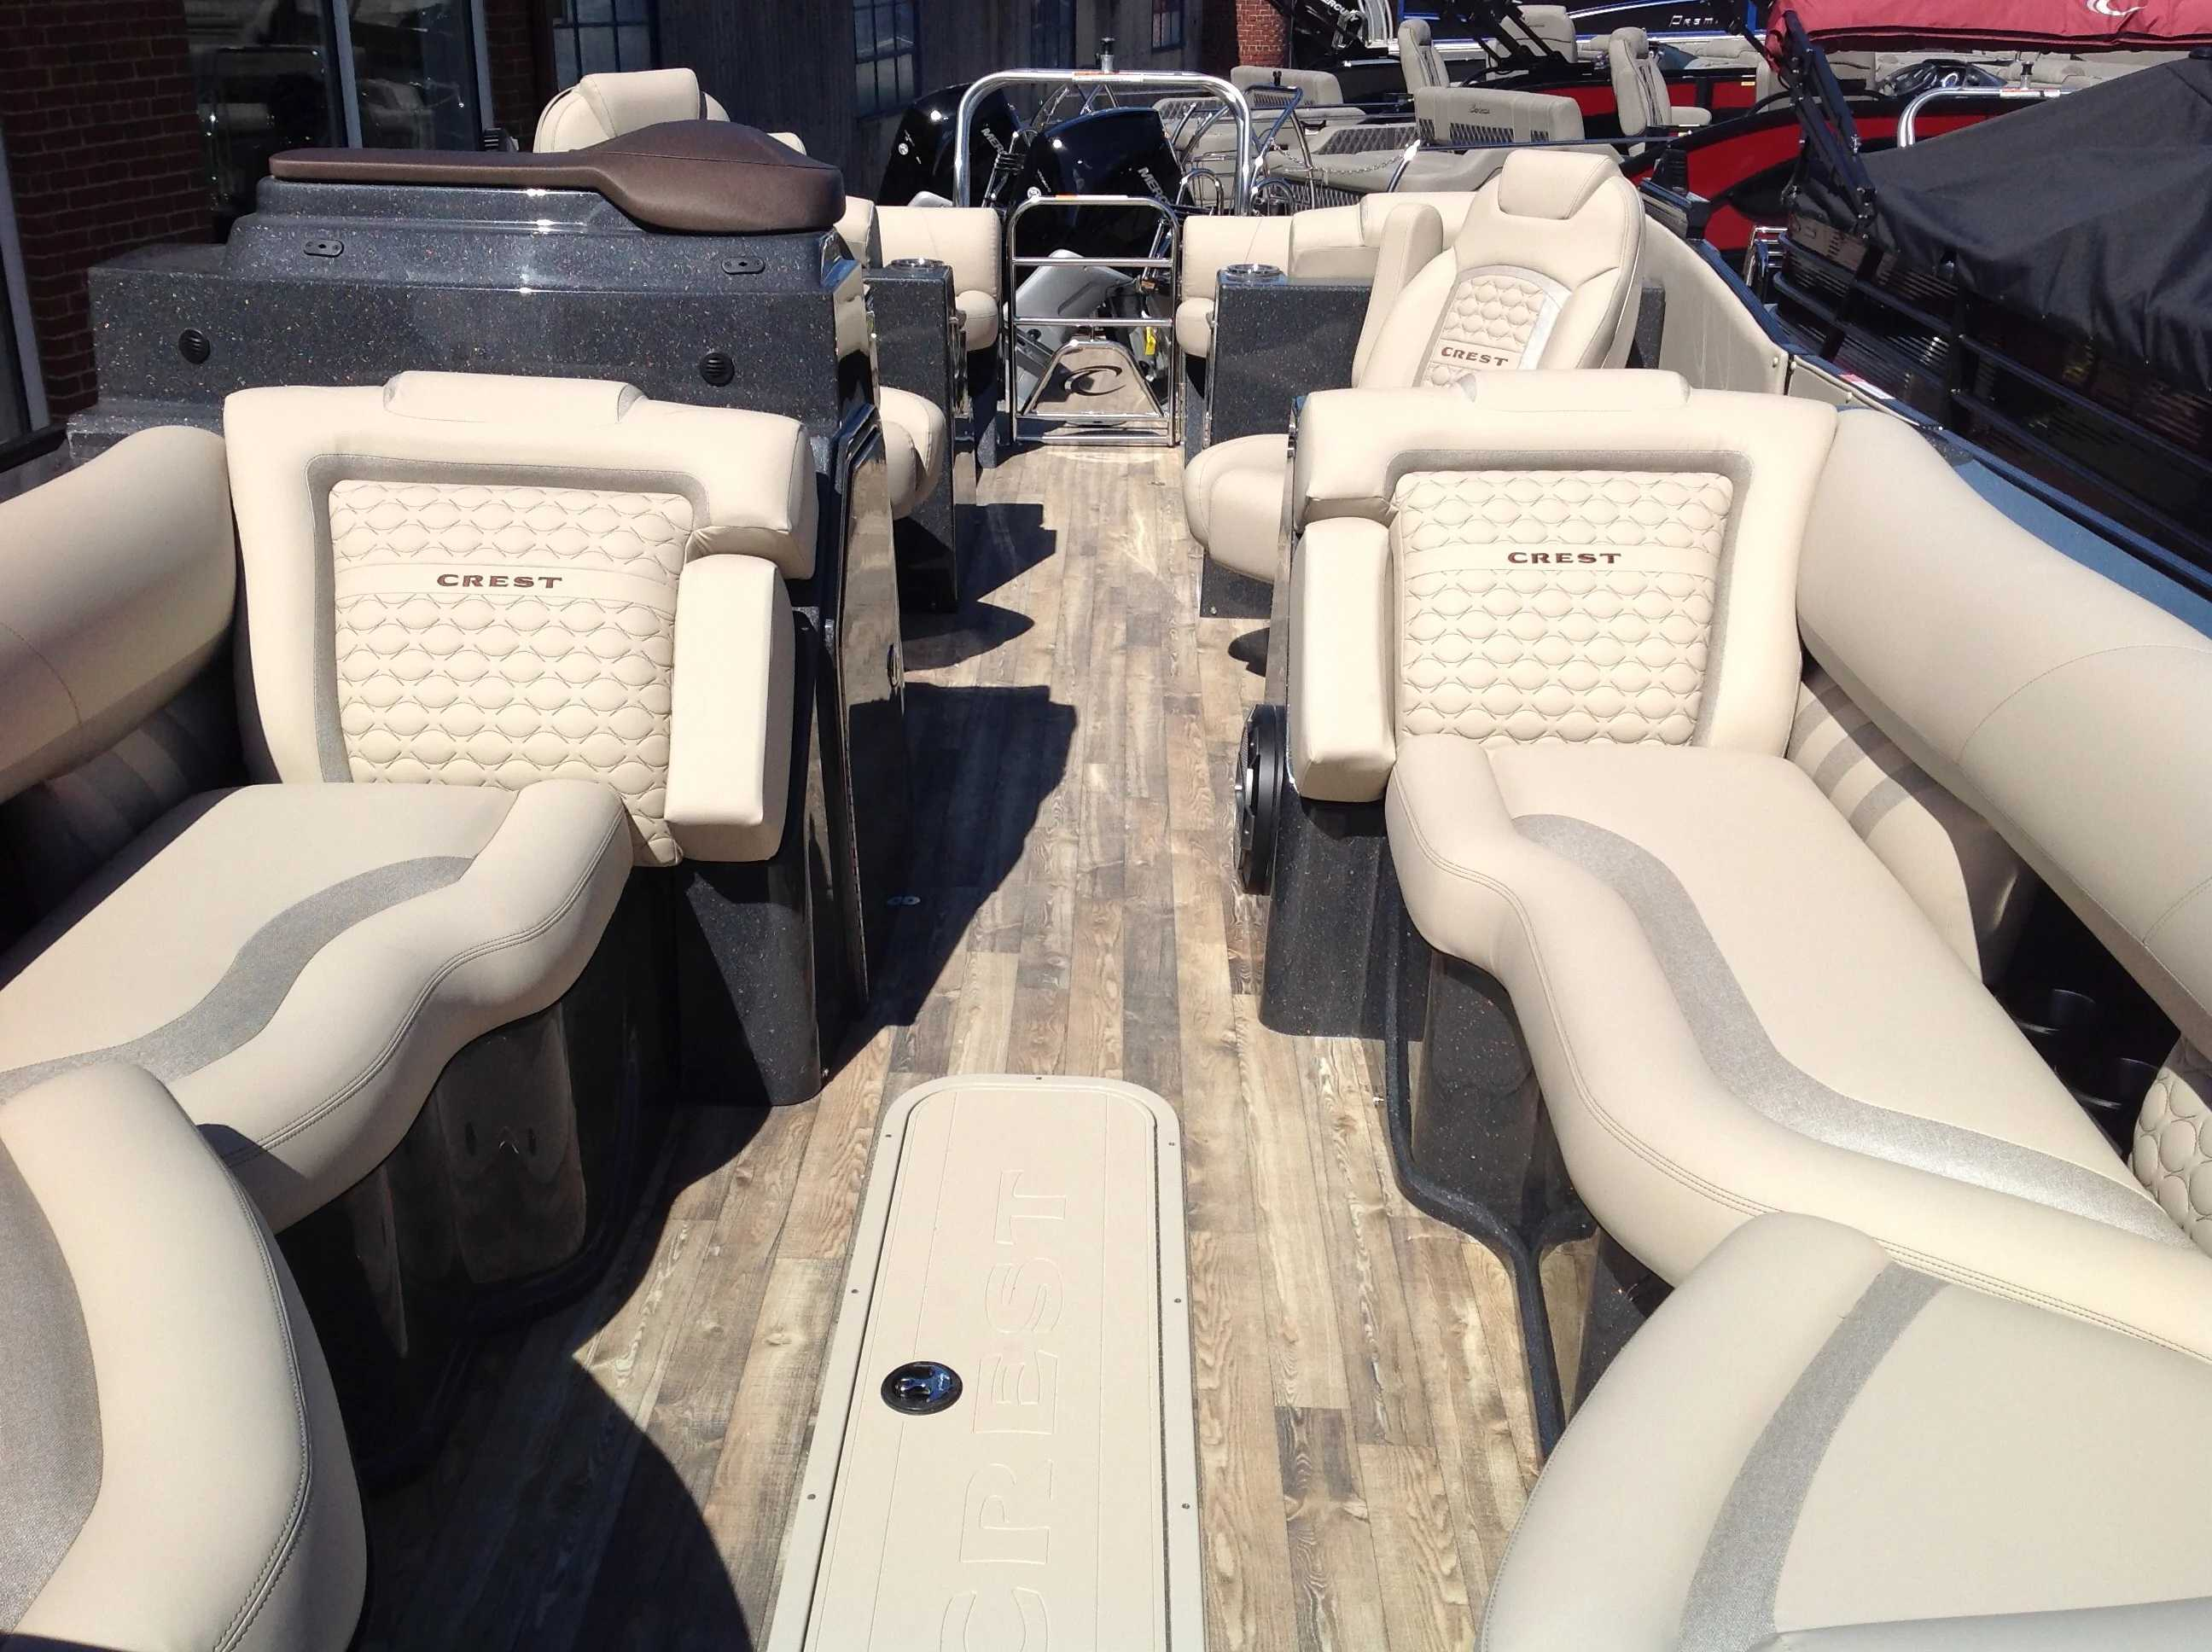 2021 Crest boat for sale, model of the boat is SAVANNAH 250SLRC & Image # 3 of 11